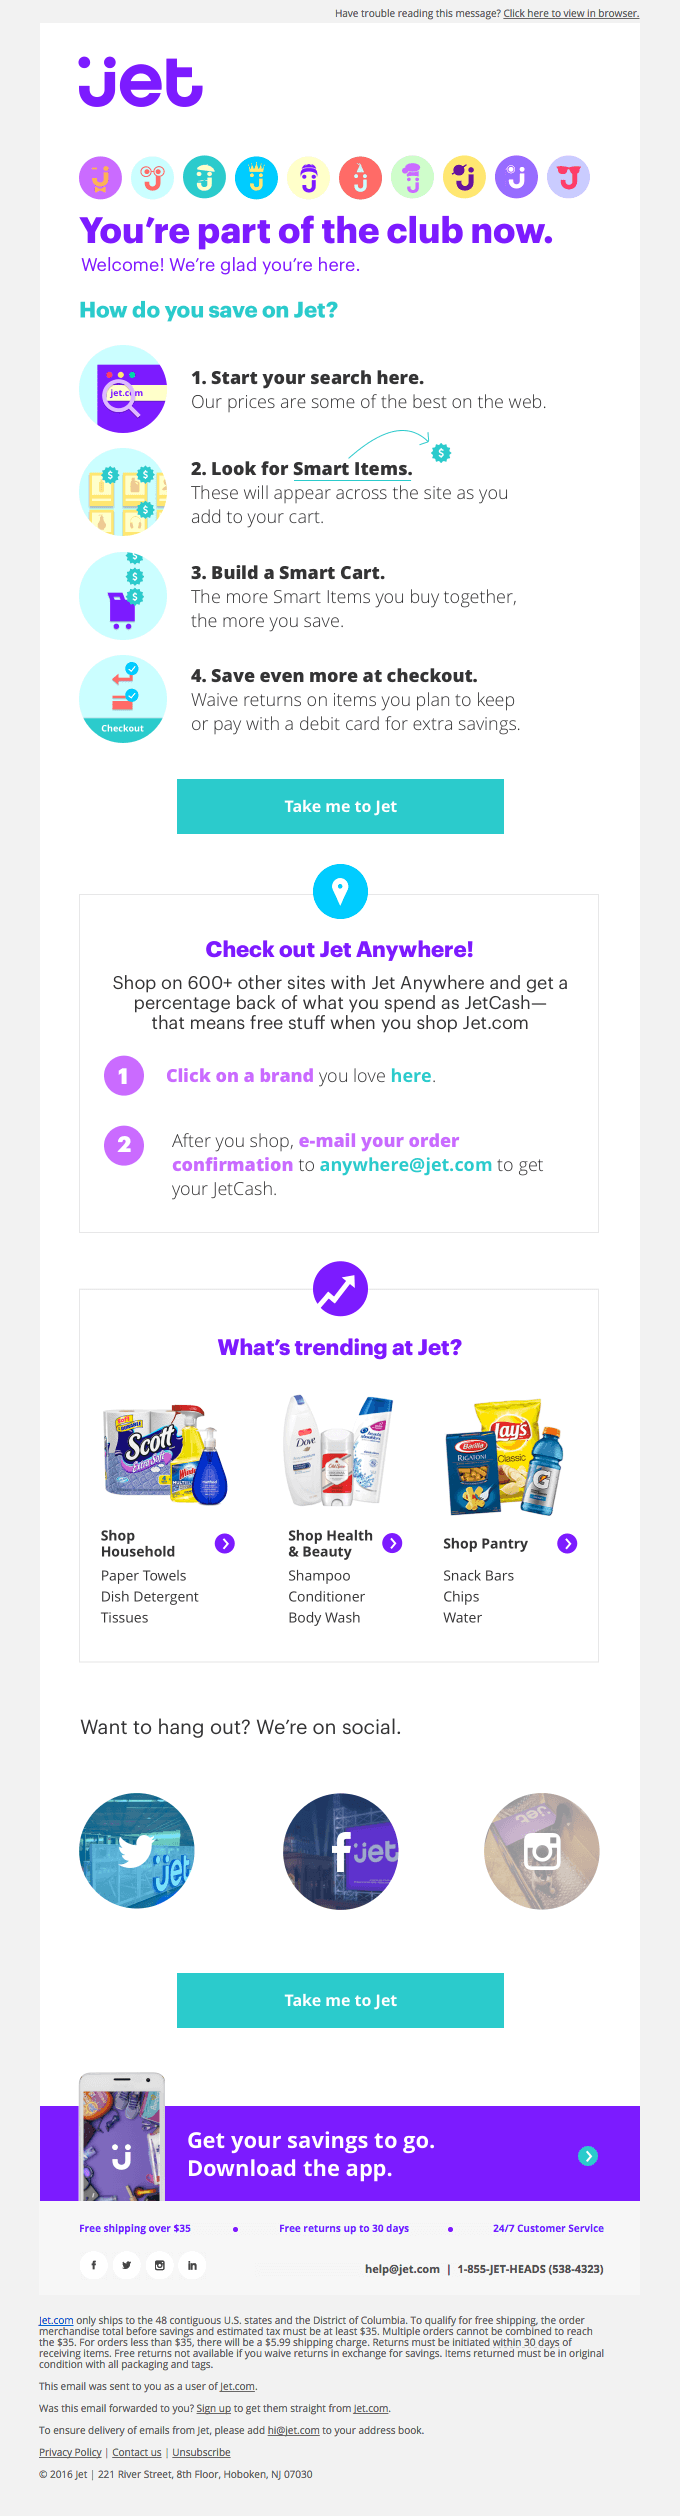 Triggered email example by Jet